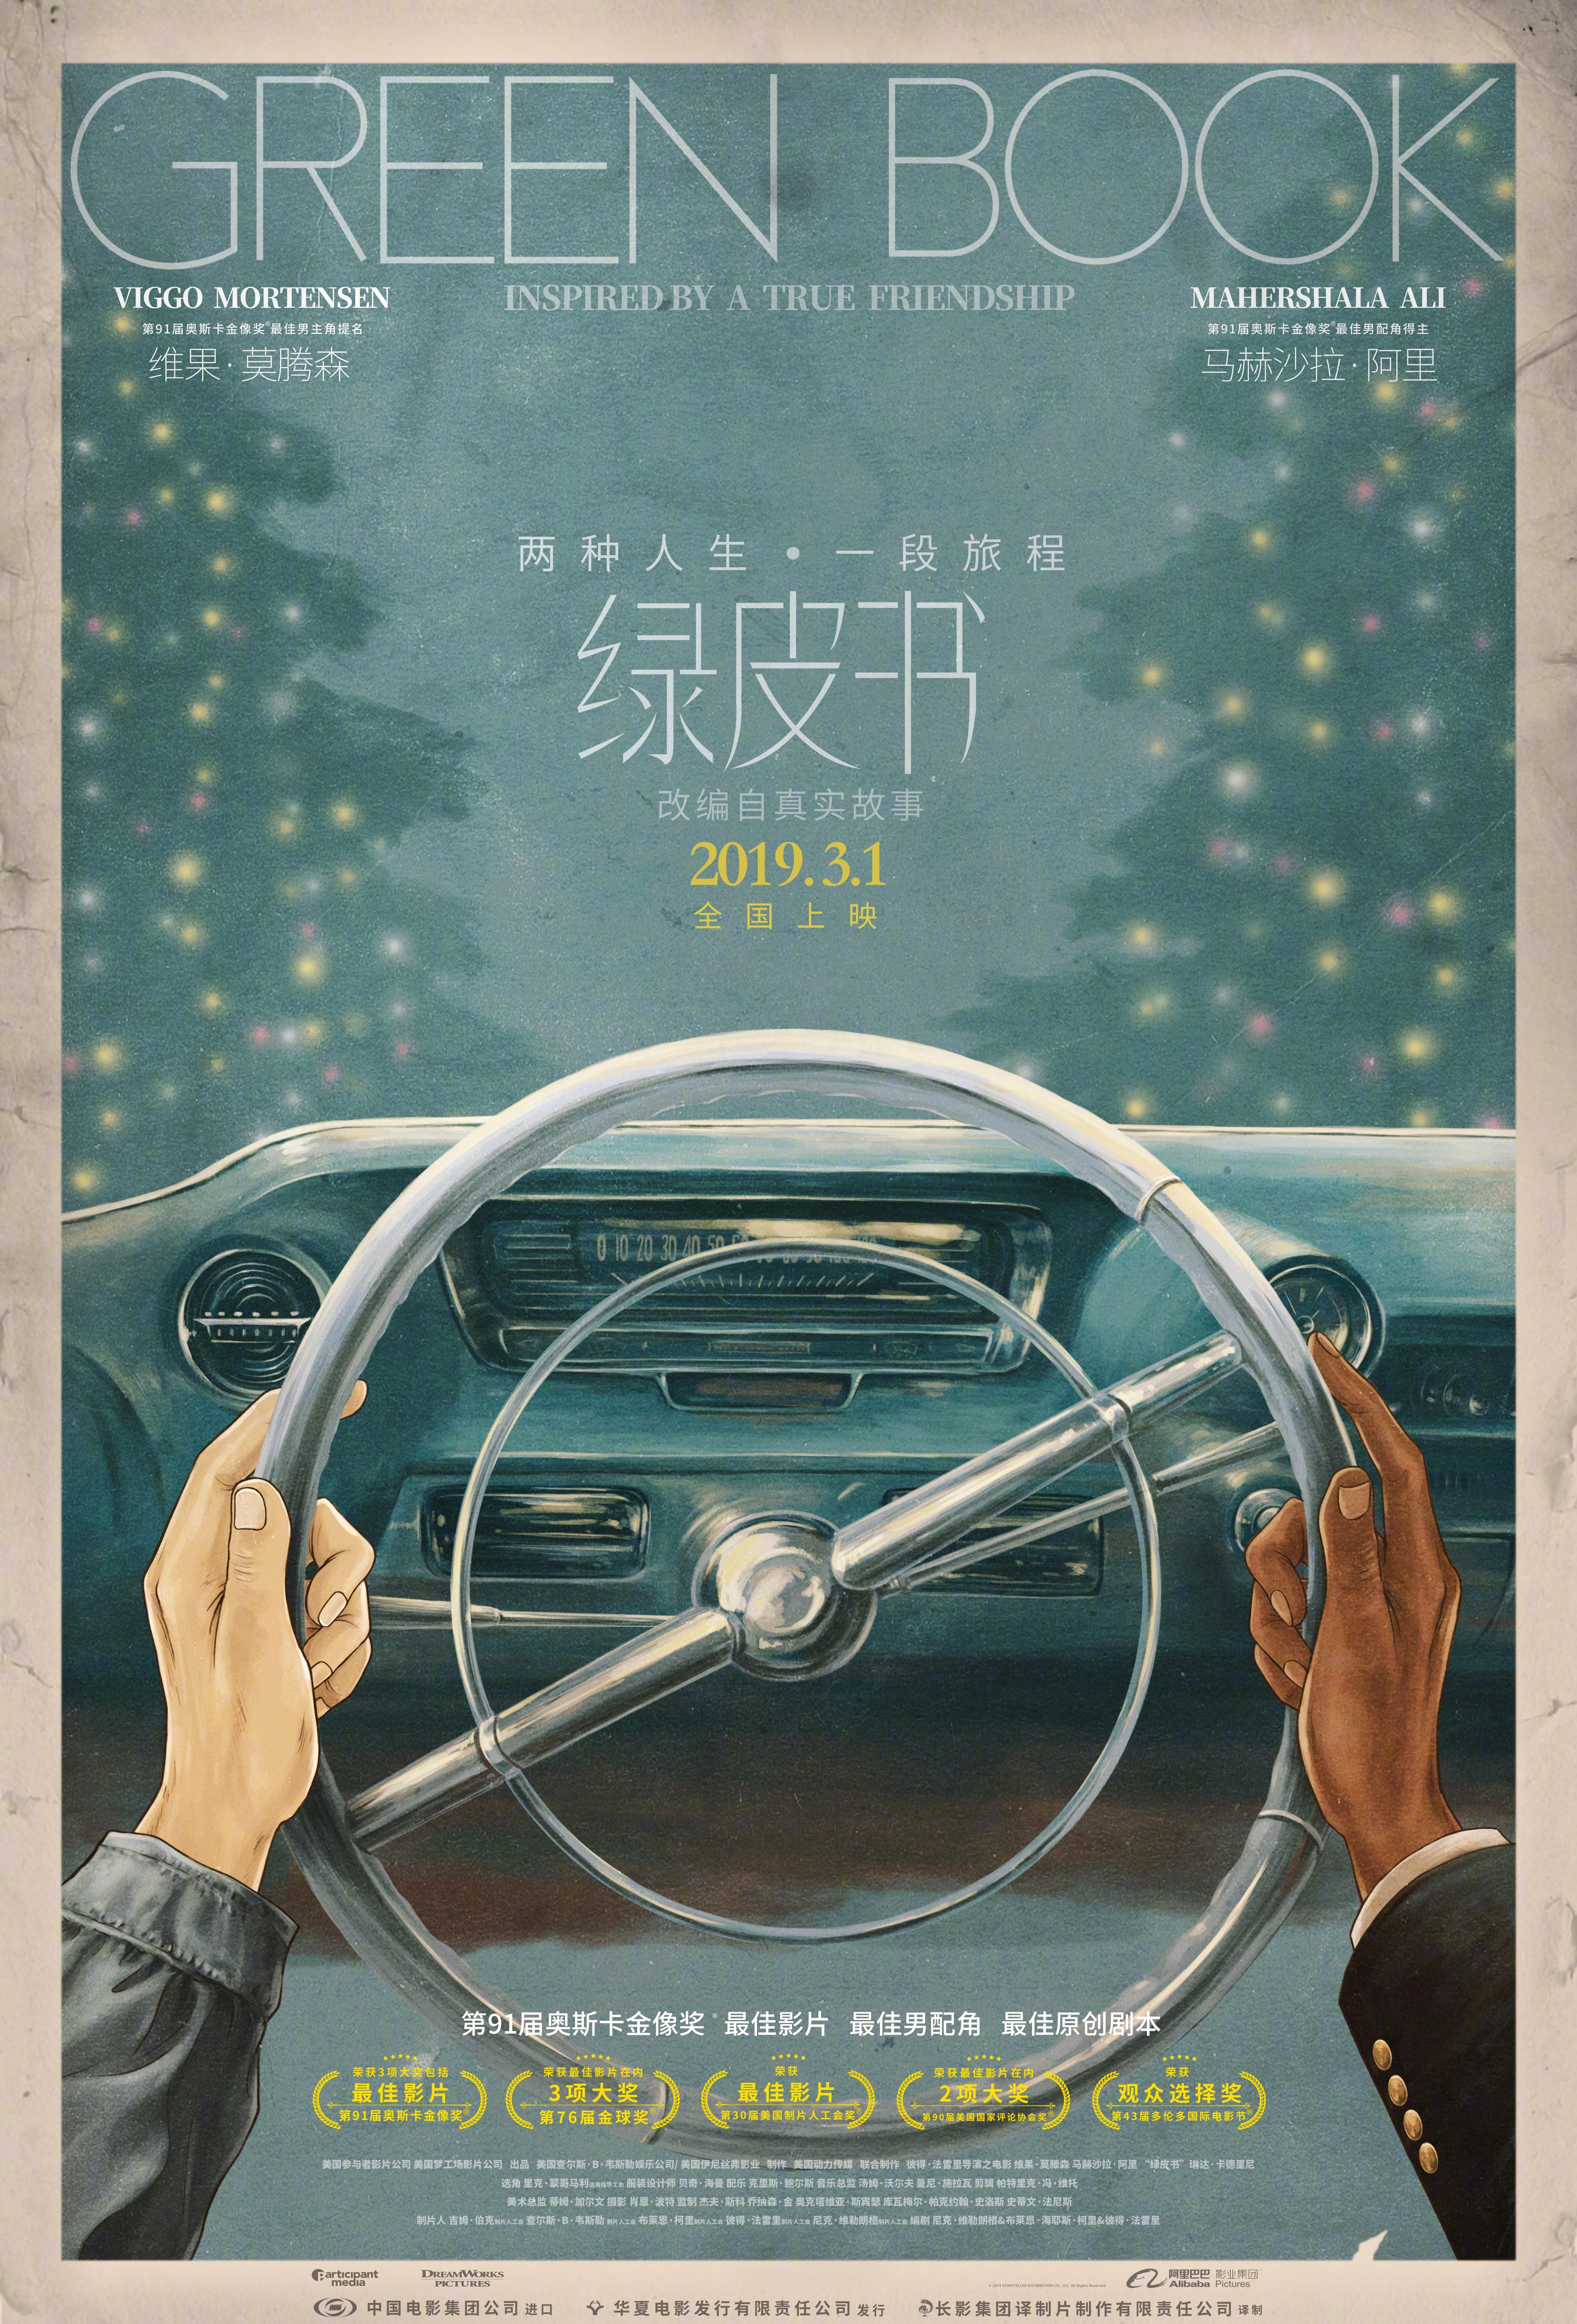 Green Book Chinese Poster   Green books, Chinese posters ...